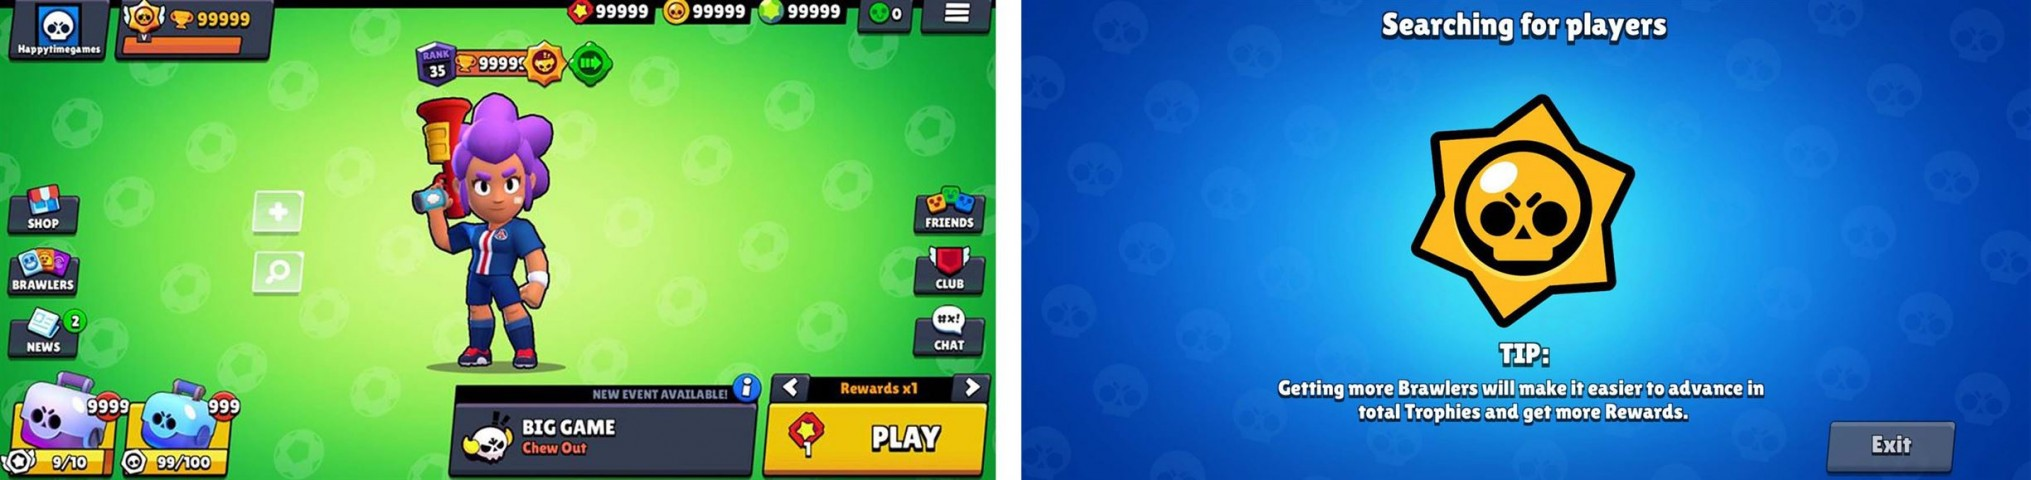 lwarb-brawl-stars-mod-apk-download.jpg